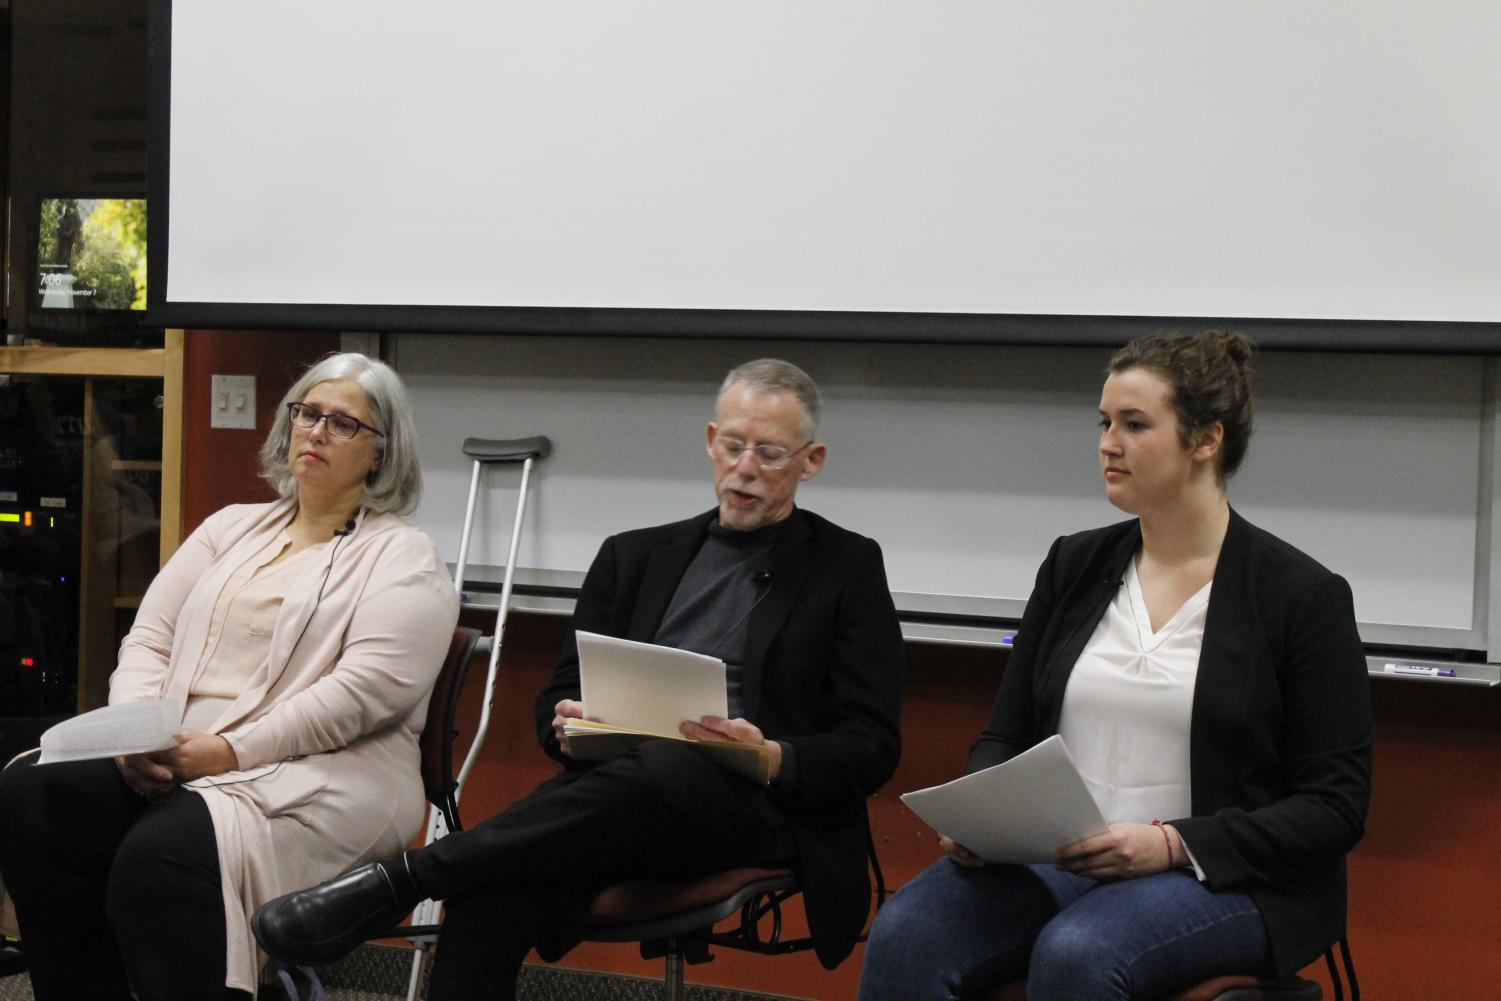 Panelists Madeleine Ross ('20), Professor Emeritus Paul Gardner, and Associate Professor of Nursing Jayme Nelson discussed their personal journeys with mental health.